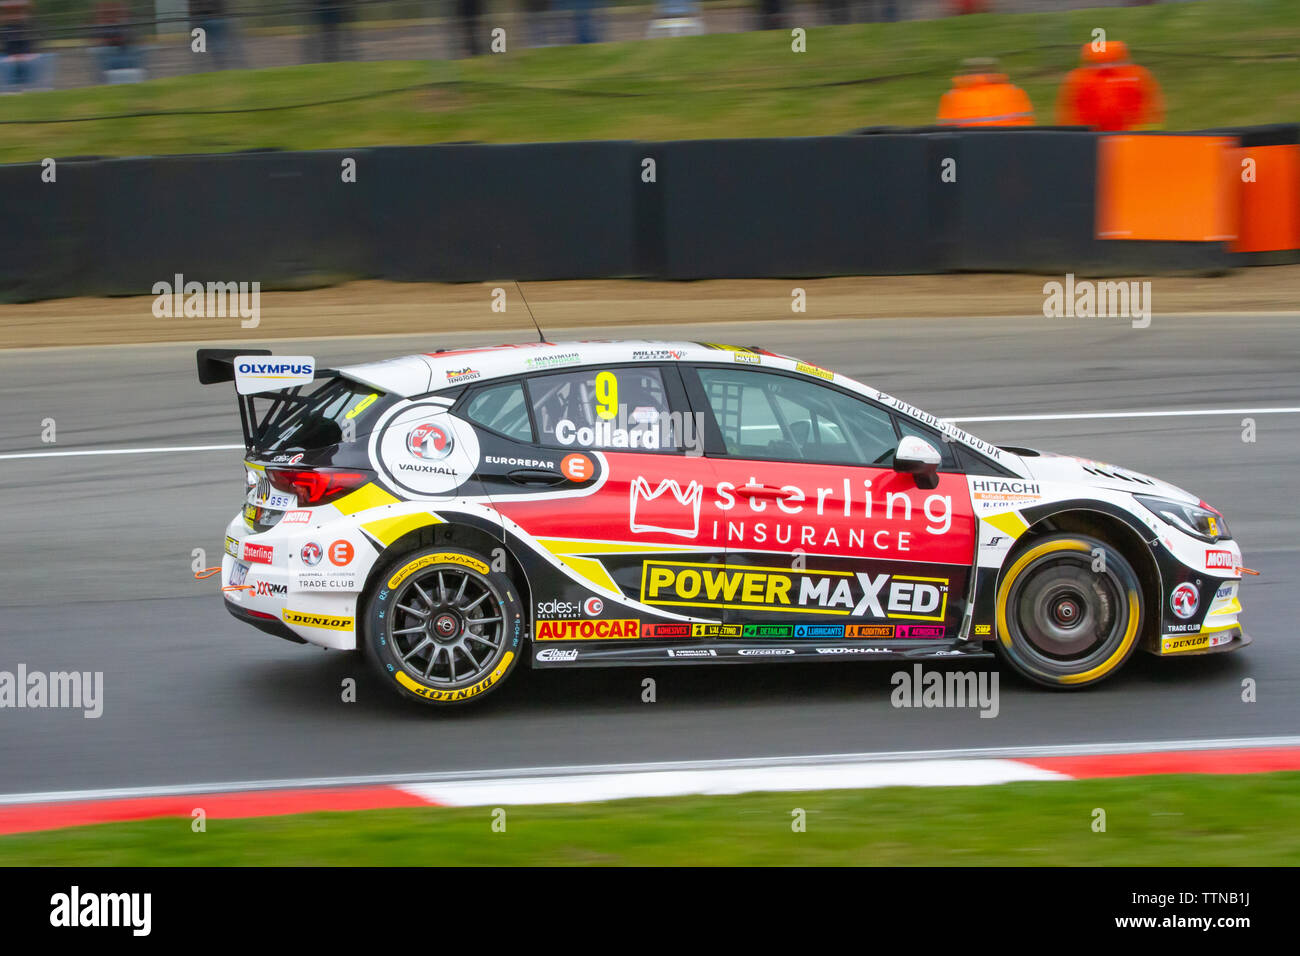 Vauxhall Astra on track, British Touring Car Championship (BTCC), Brands Hatch, first race weekend of the season, April 2019 - Stock Image